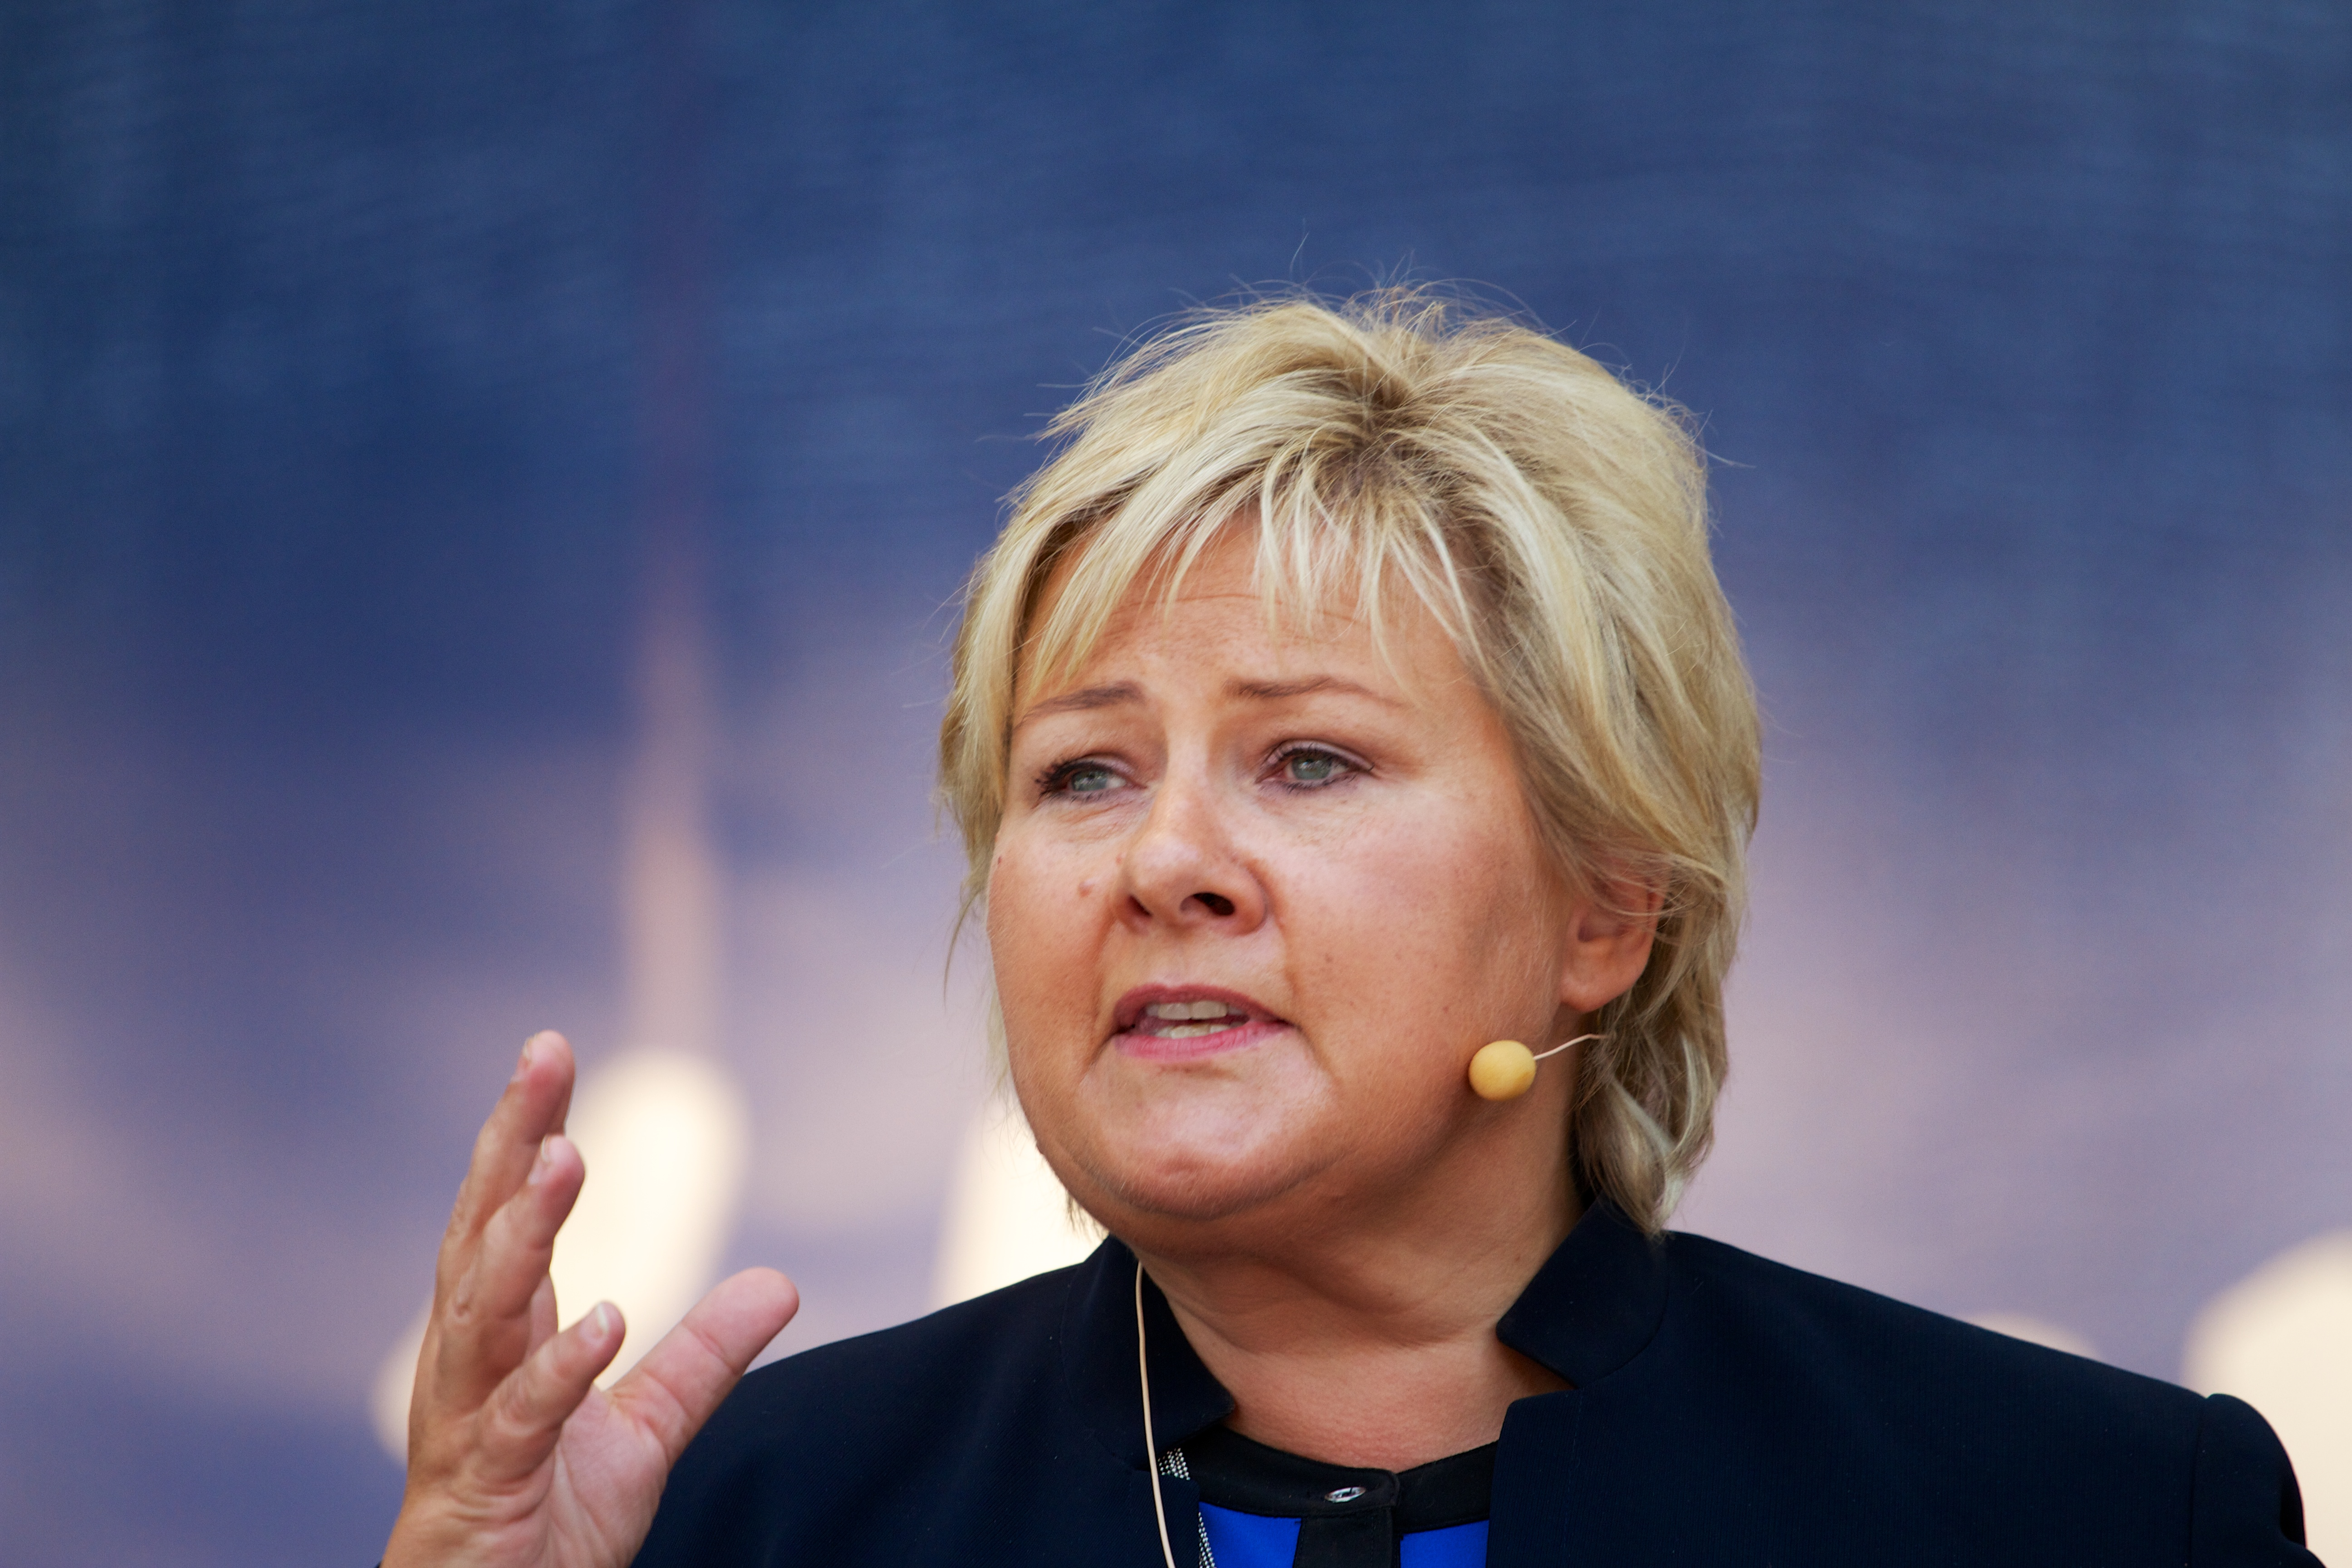 https://upload.wikimedia.org/wikipedia/commons/c/c3/Erna_Solberg_-_2013-08-10_at_13-01-26.jpg